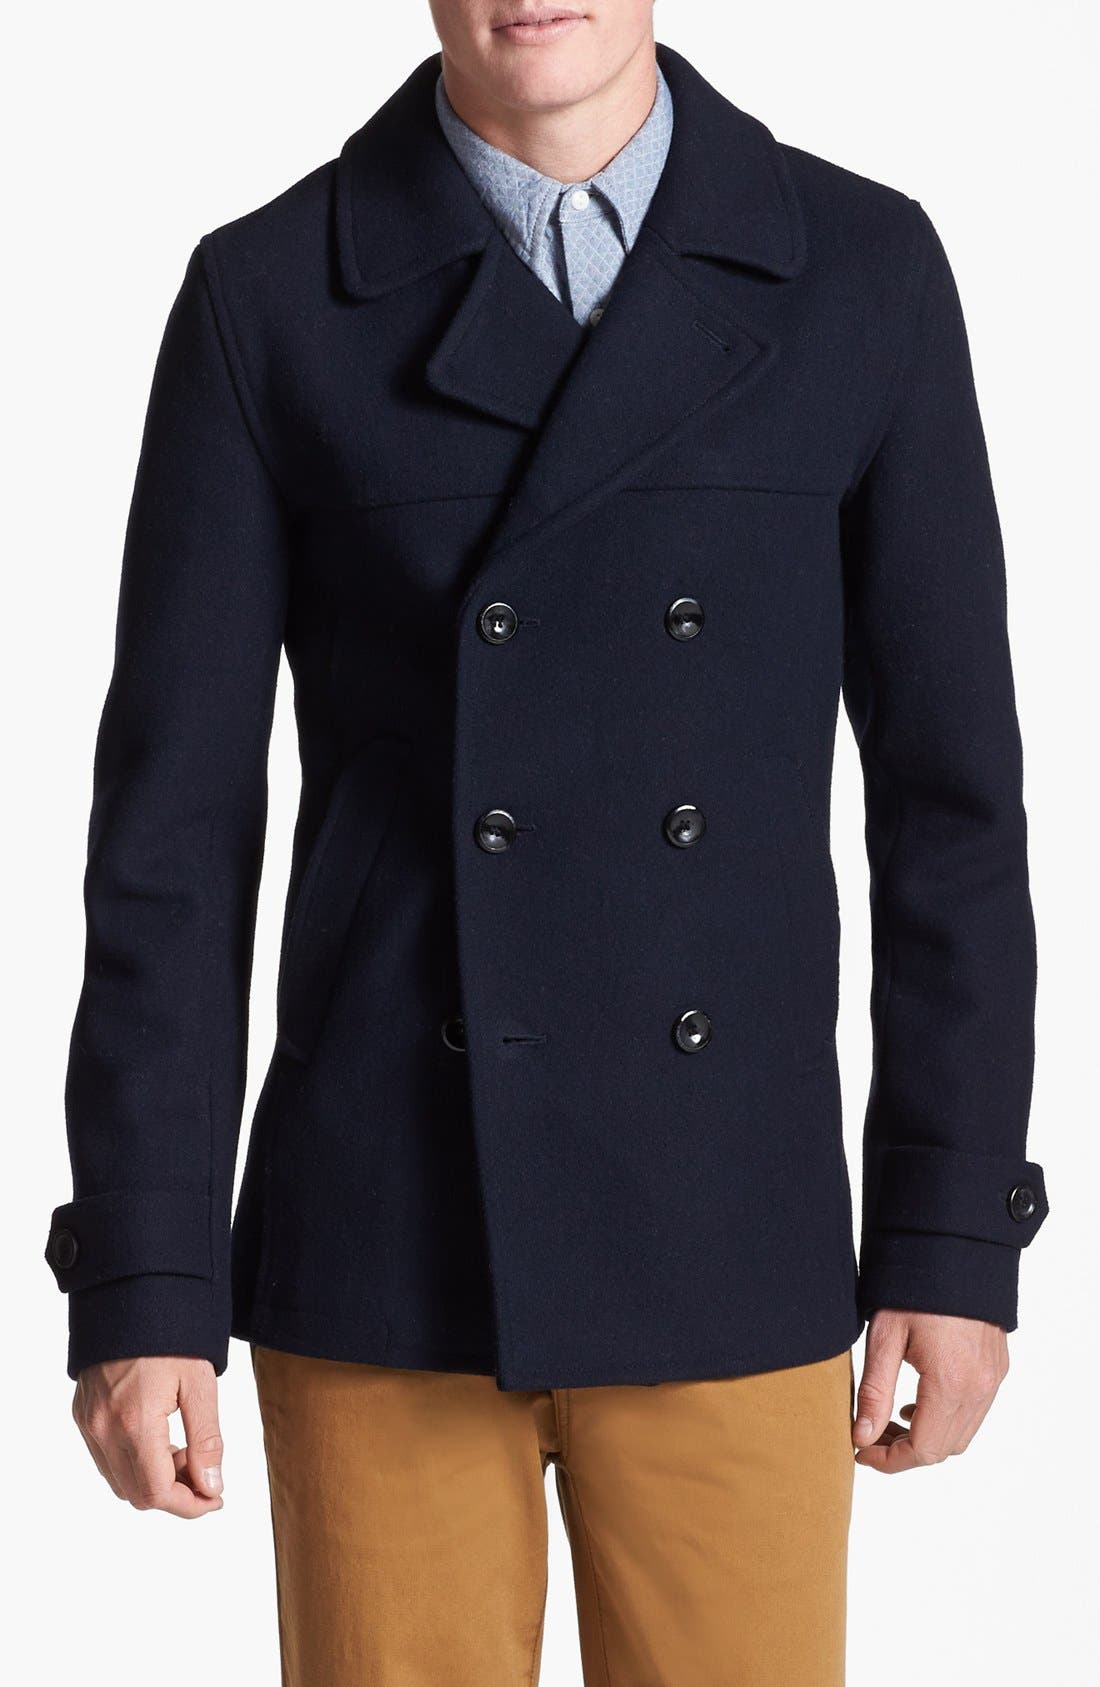 Alternate Image 1 Selected - Topman Skinny Fit Double Breasted Wool Blend Peacoat